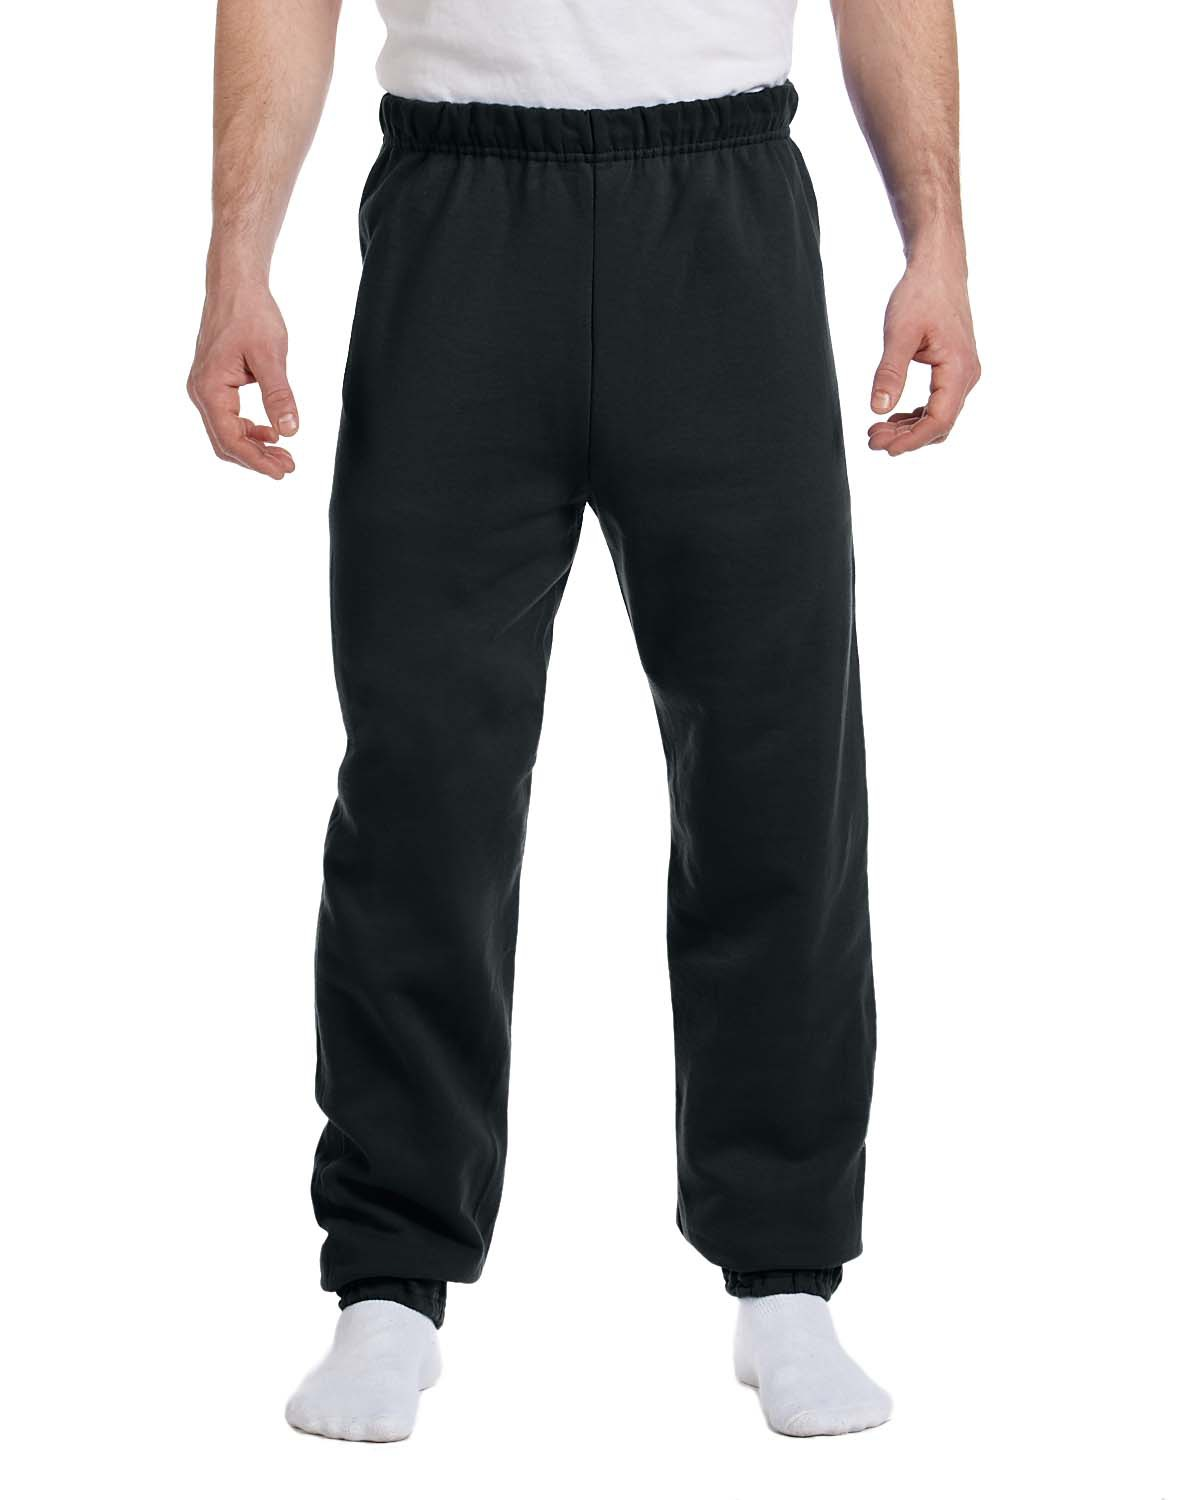 Jerzees 973 8 oz. NuBlend50/50 Sweatpants